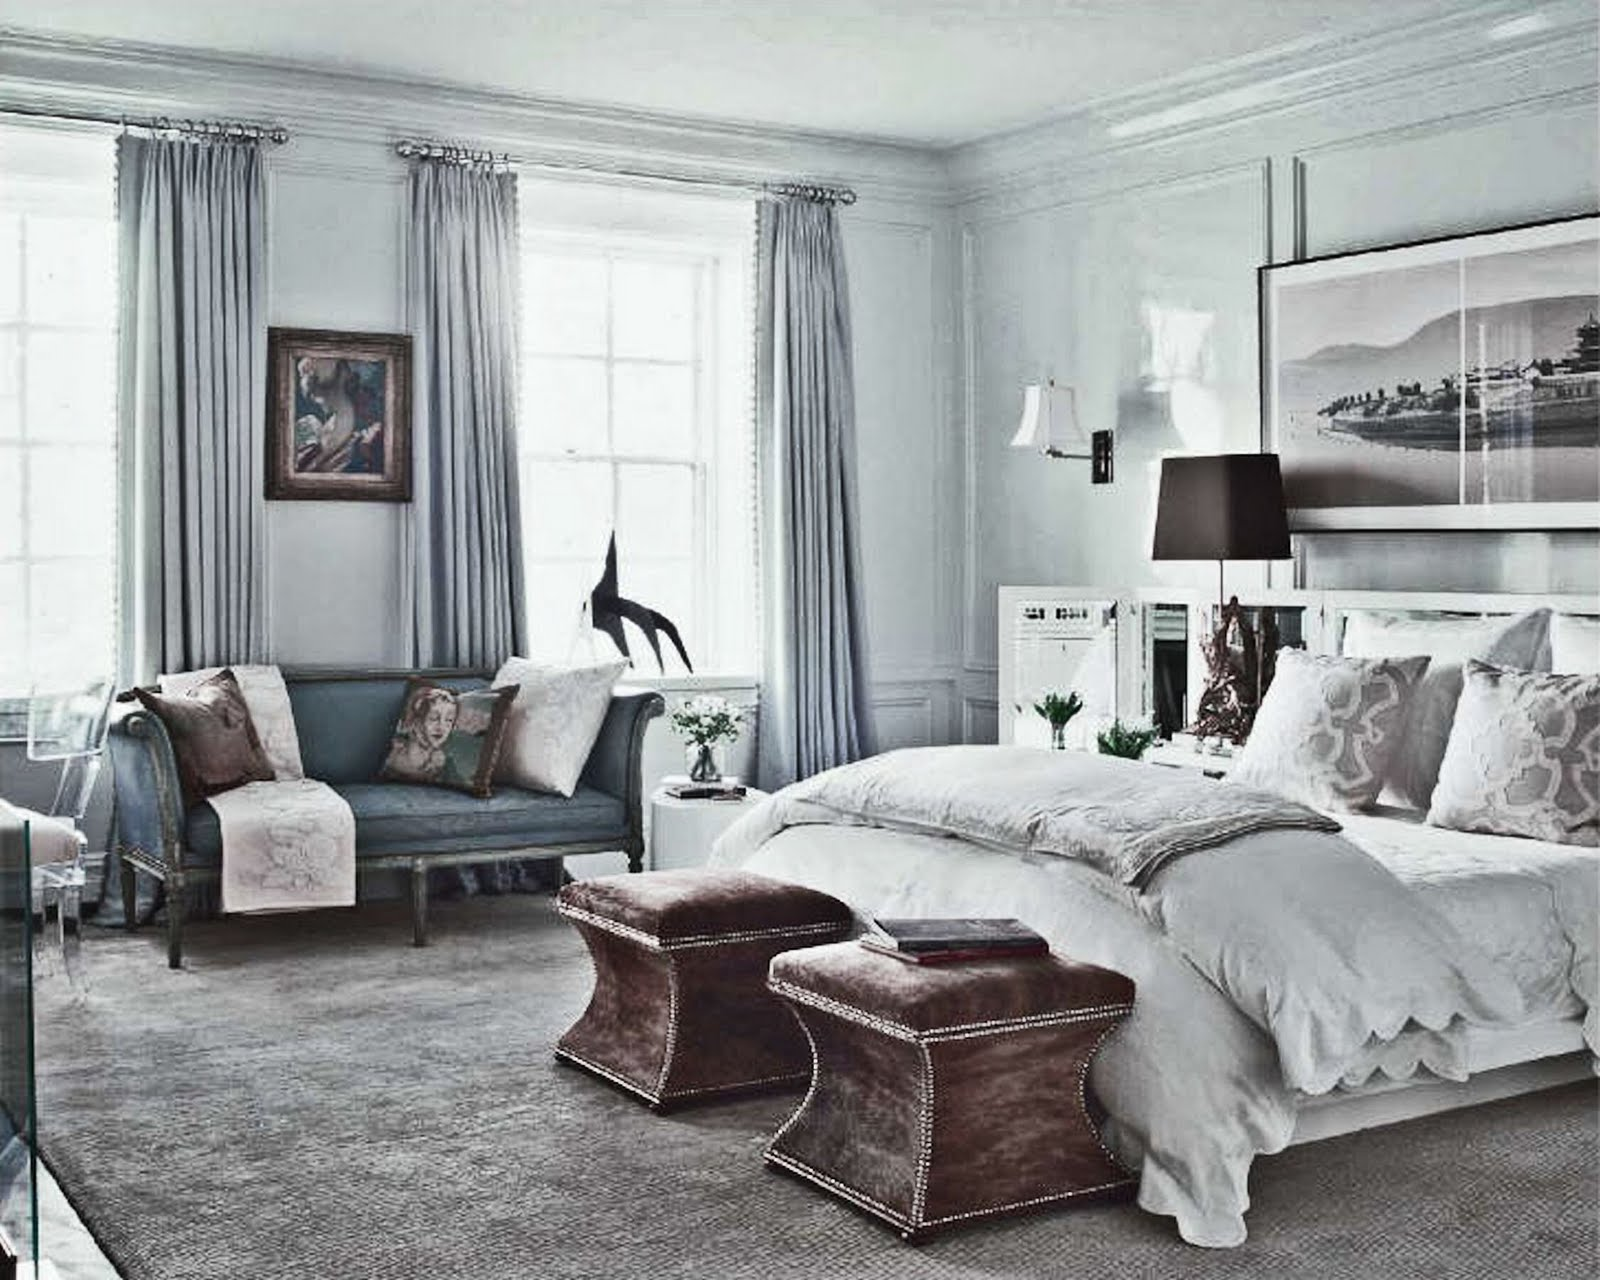 Simple everyday glamour picture perfect bedroom - Blue bedroom ideas ...